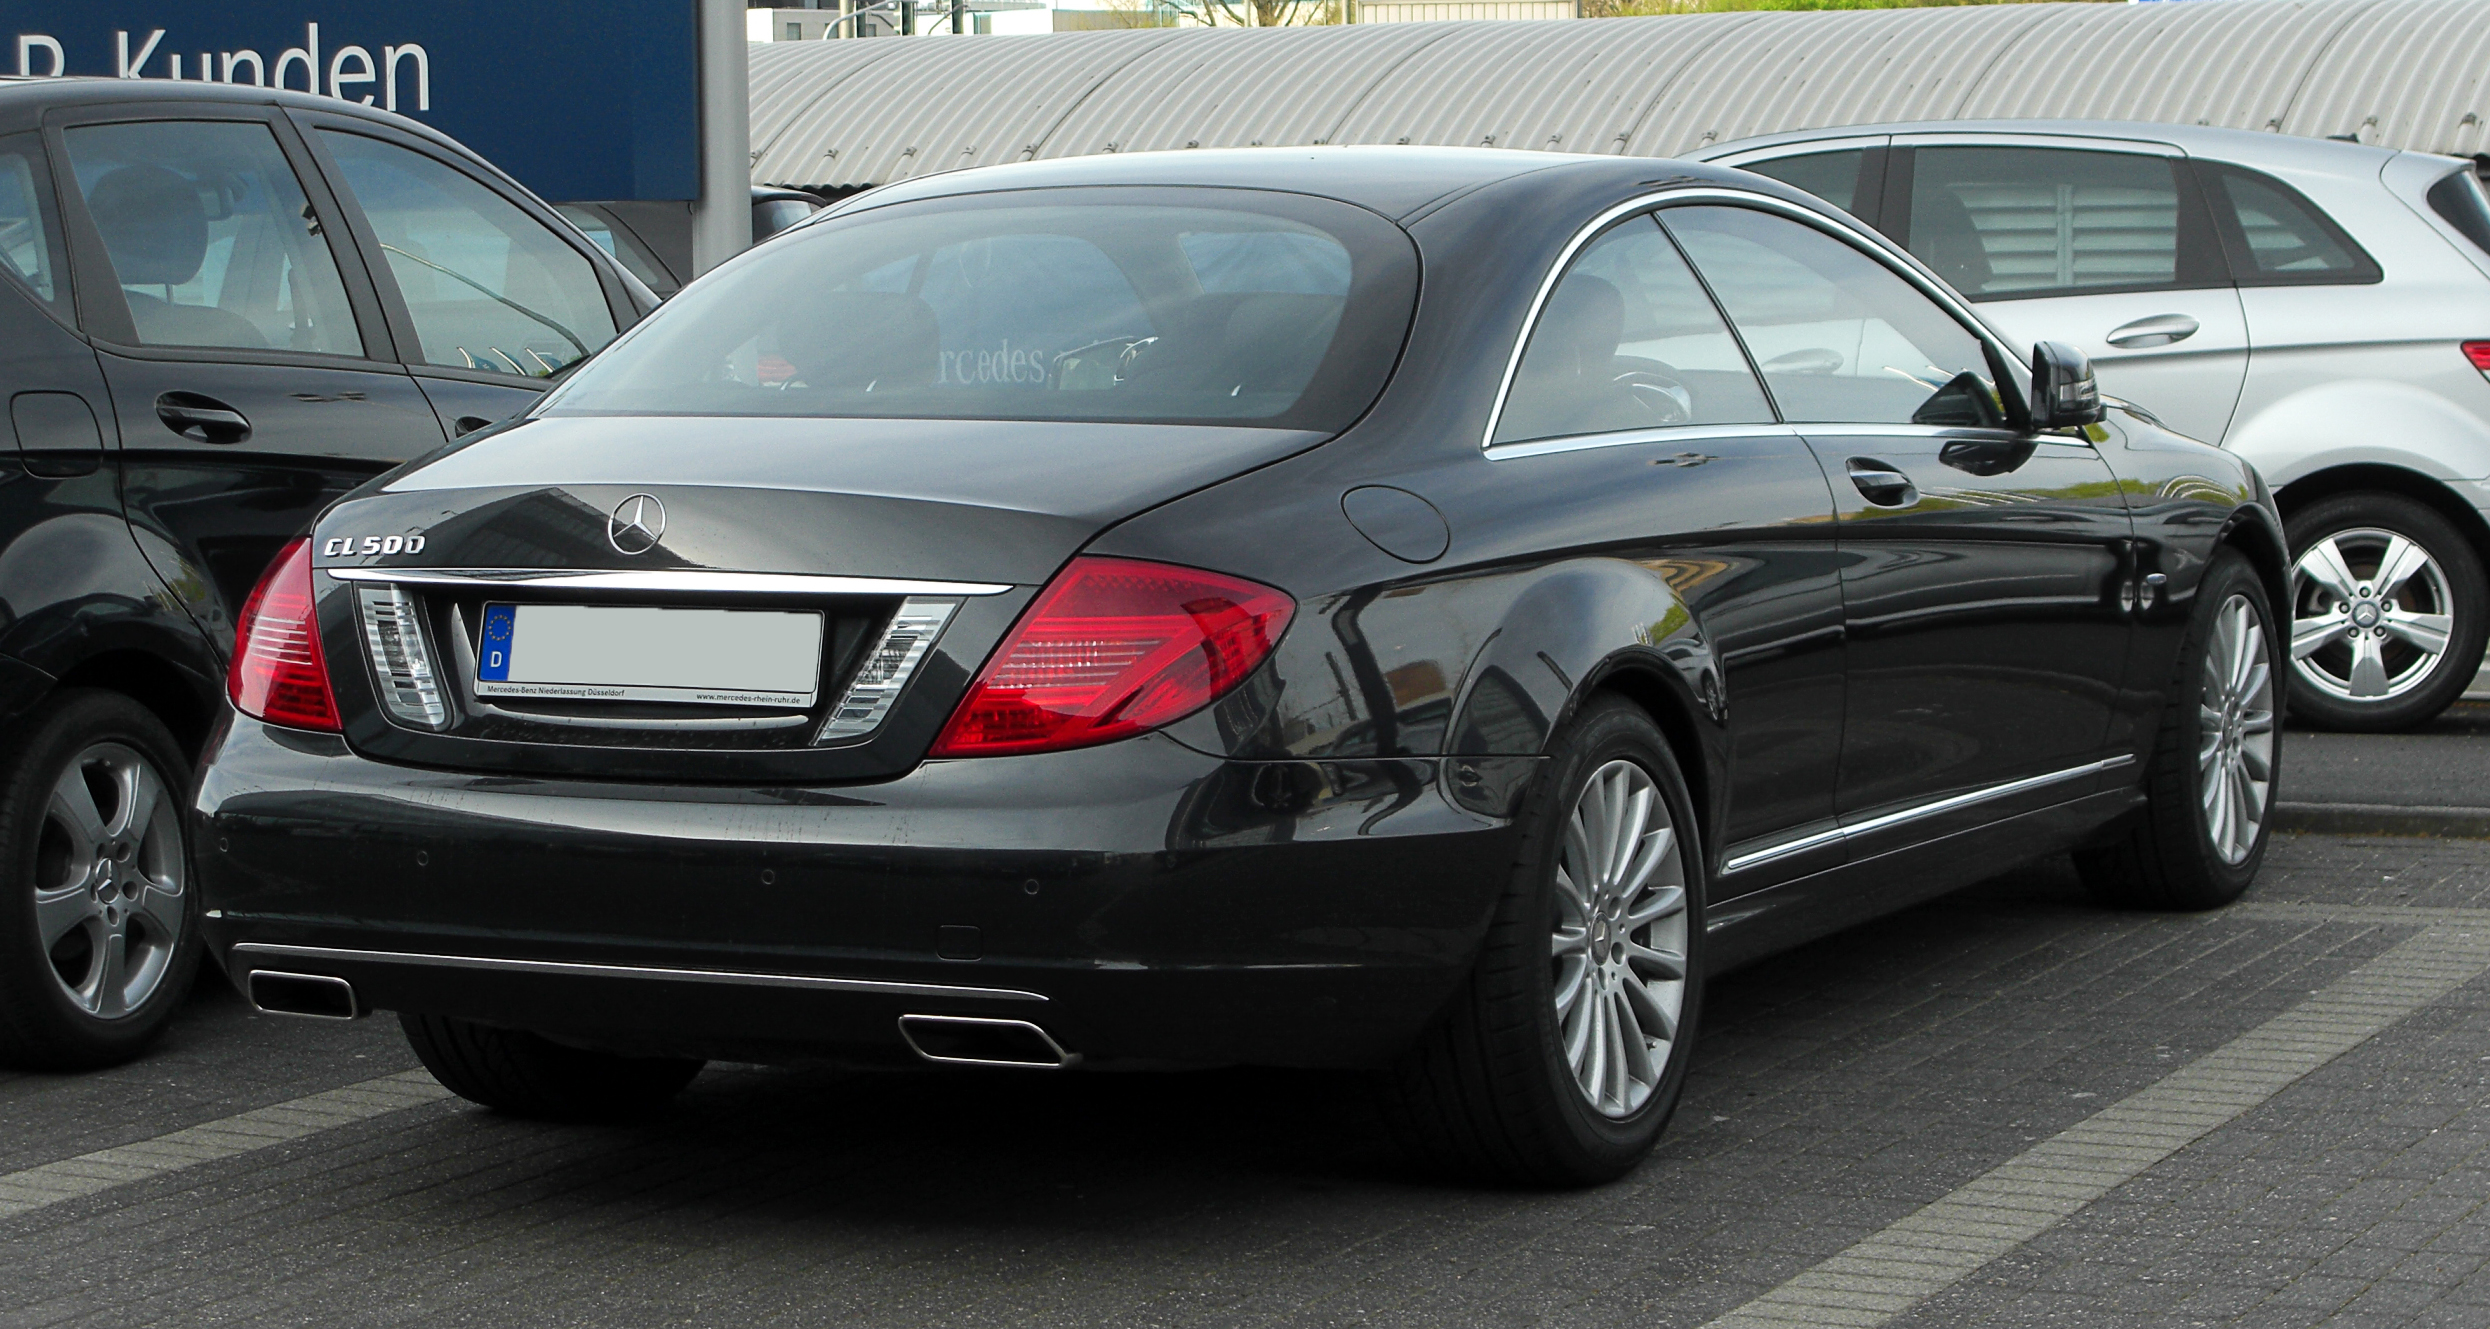 Mercedes benz cl 500 blueefficiency c 216 facelift for Mercedes benz emergency number